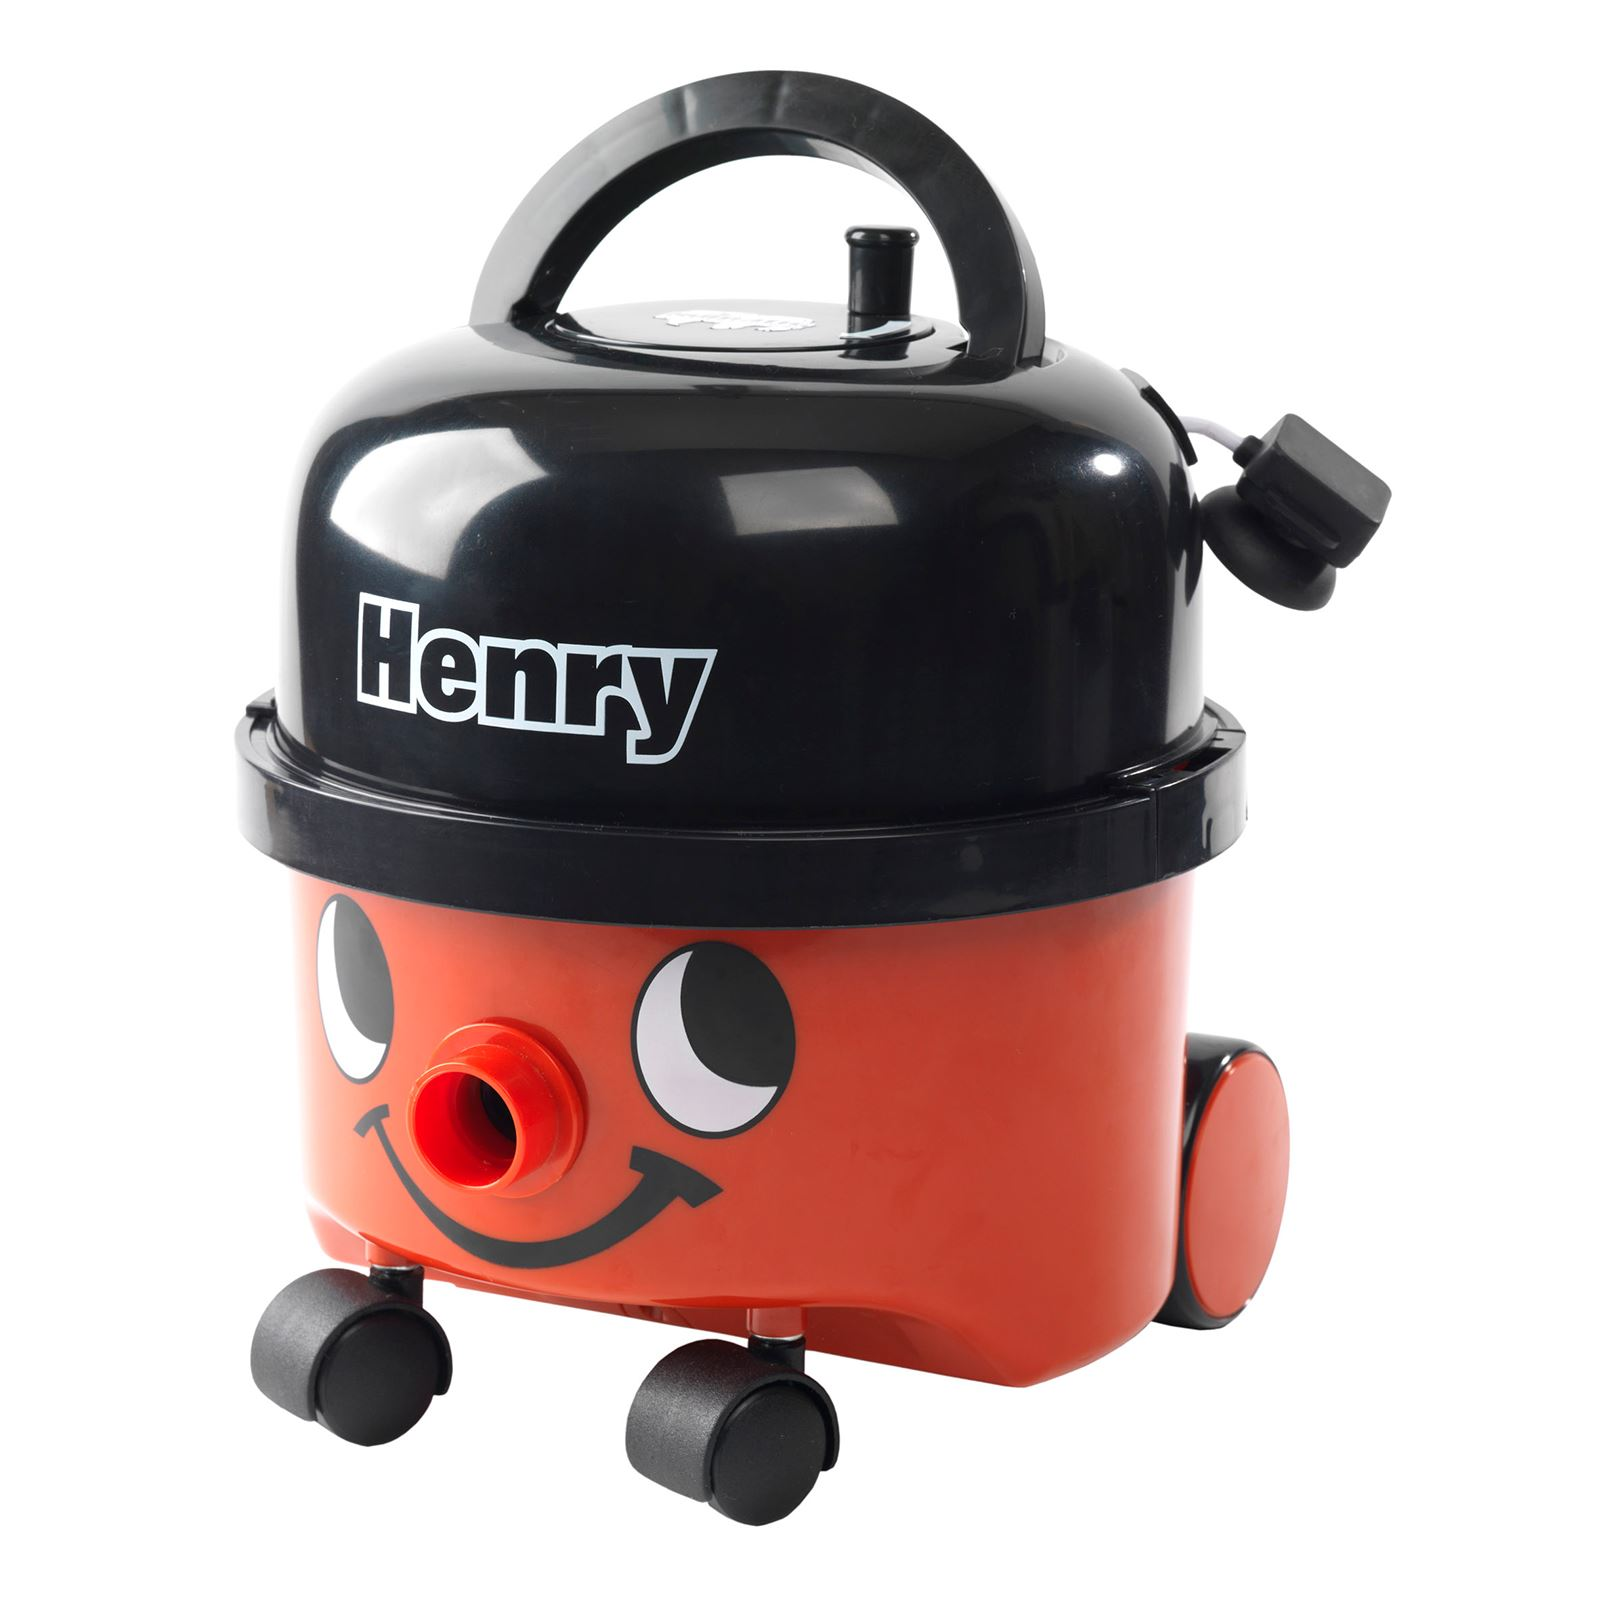 Indexbild 19 - KIDS VACUUM CLEANERS - LITTLE HENRY HETTY DYSON - KIDS CHILDRENS ROLE PLAY